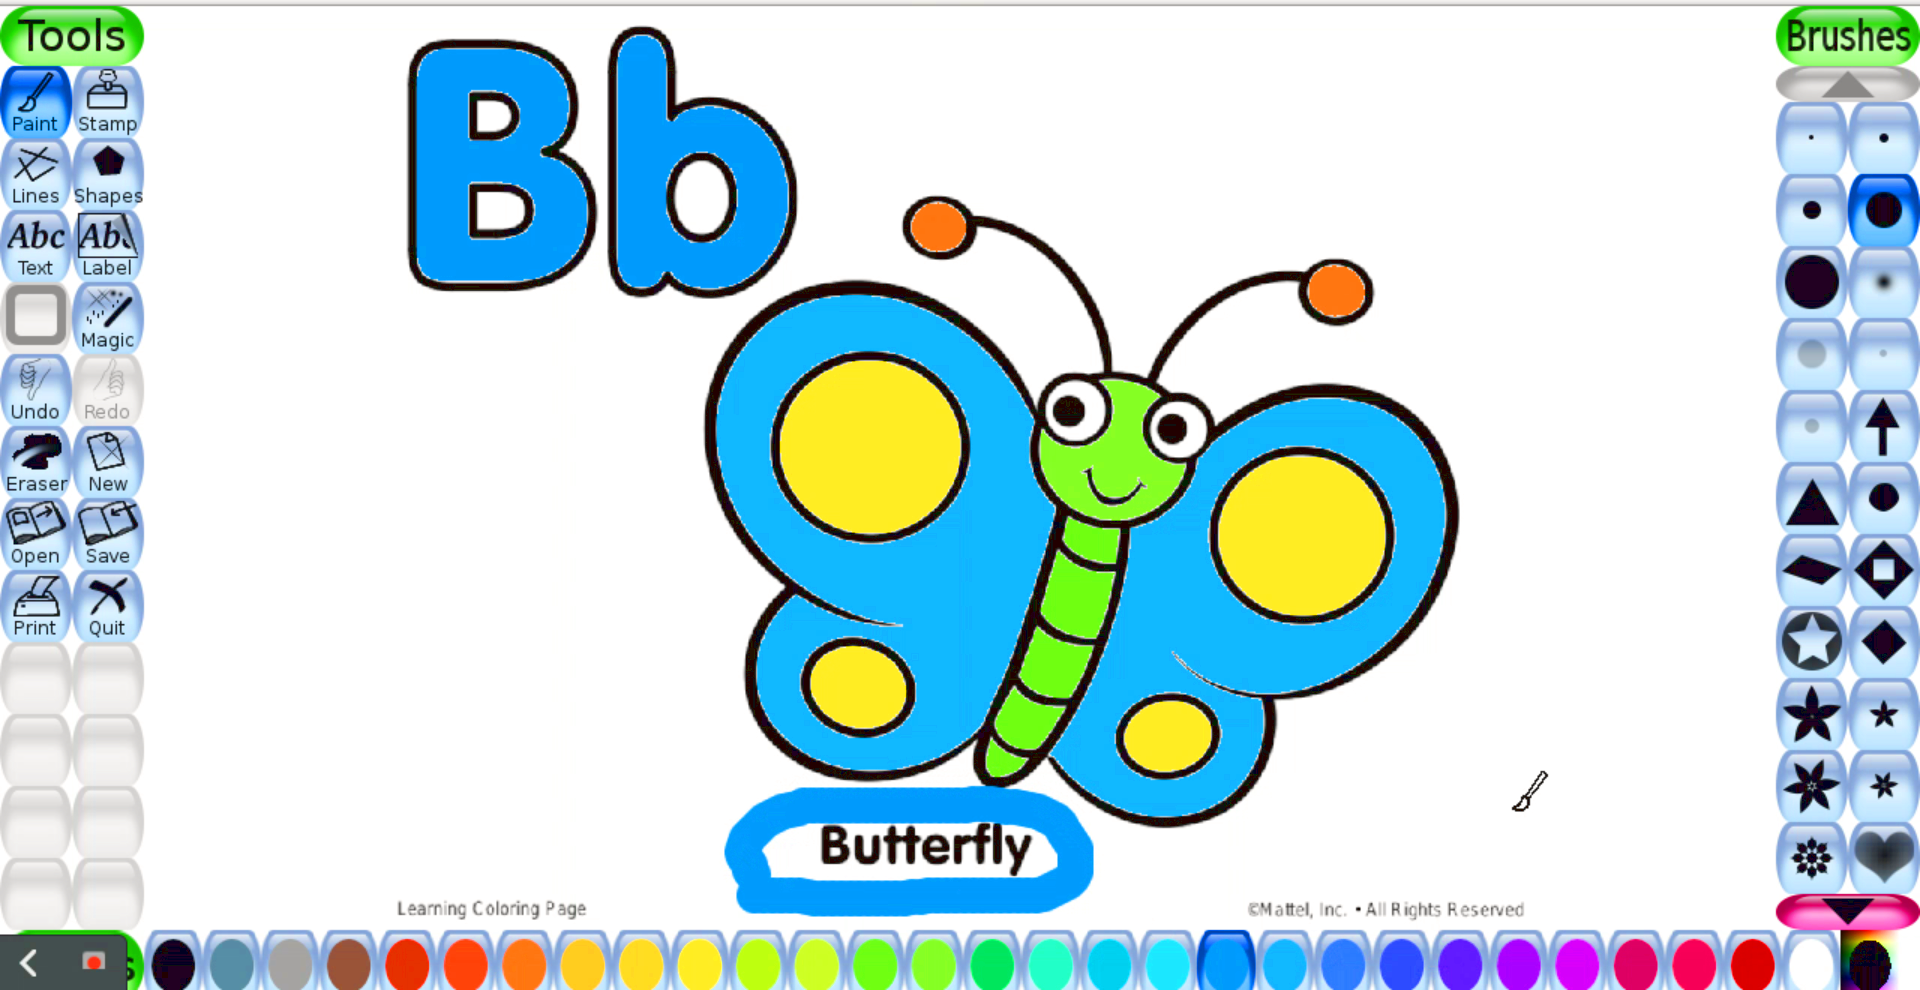 Abc Coloring Pages Alphabet Coloring Pages For Kids Alphabet Letter B Butterfly Coloring Pages For Kids Abc Coloring Pages Alphabet For Kids Abc Coloring